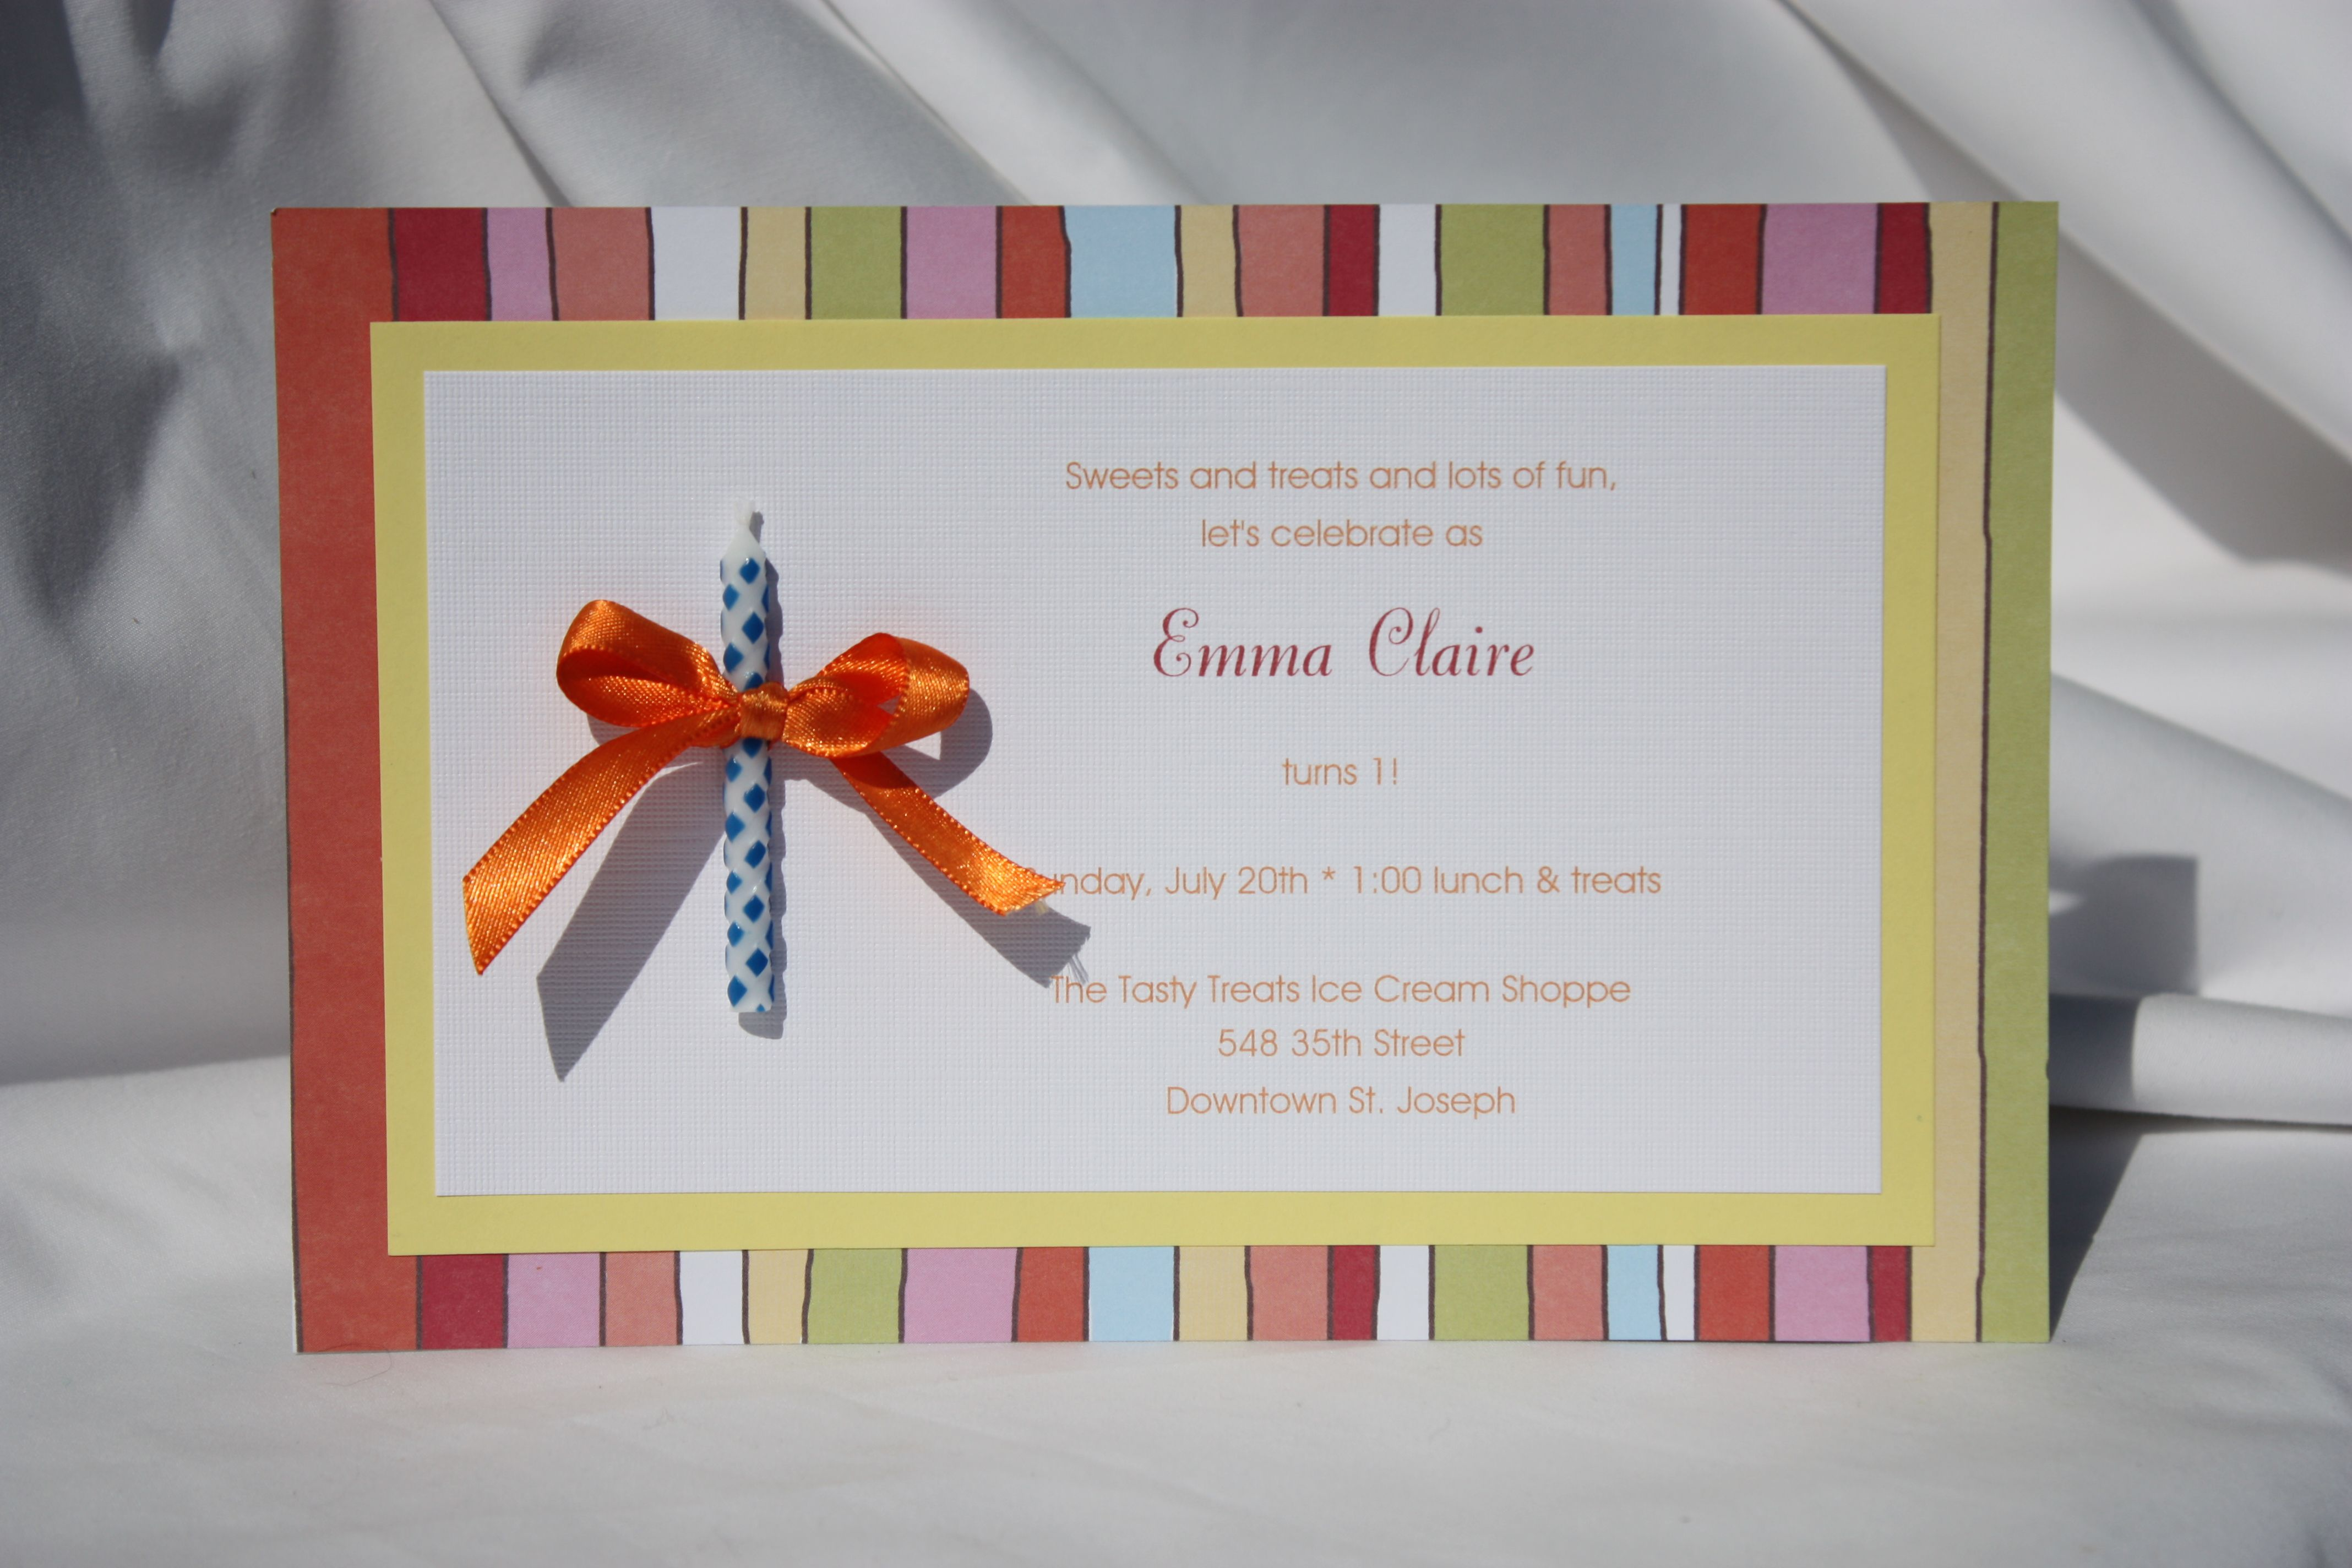 Guest post how to make your own party invitations 1st birthday google image result for httpdoublefunpartiesleswordpress201111 candle invitationg stopboris Choice Image